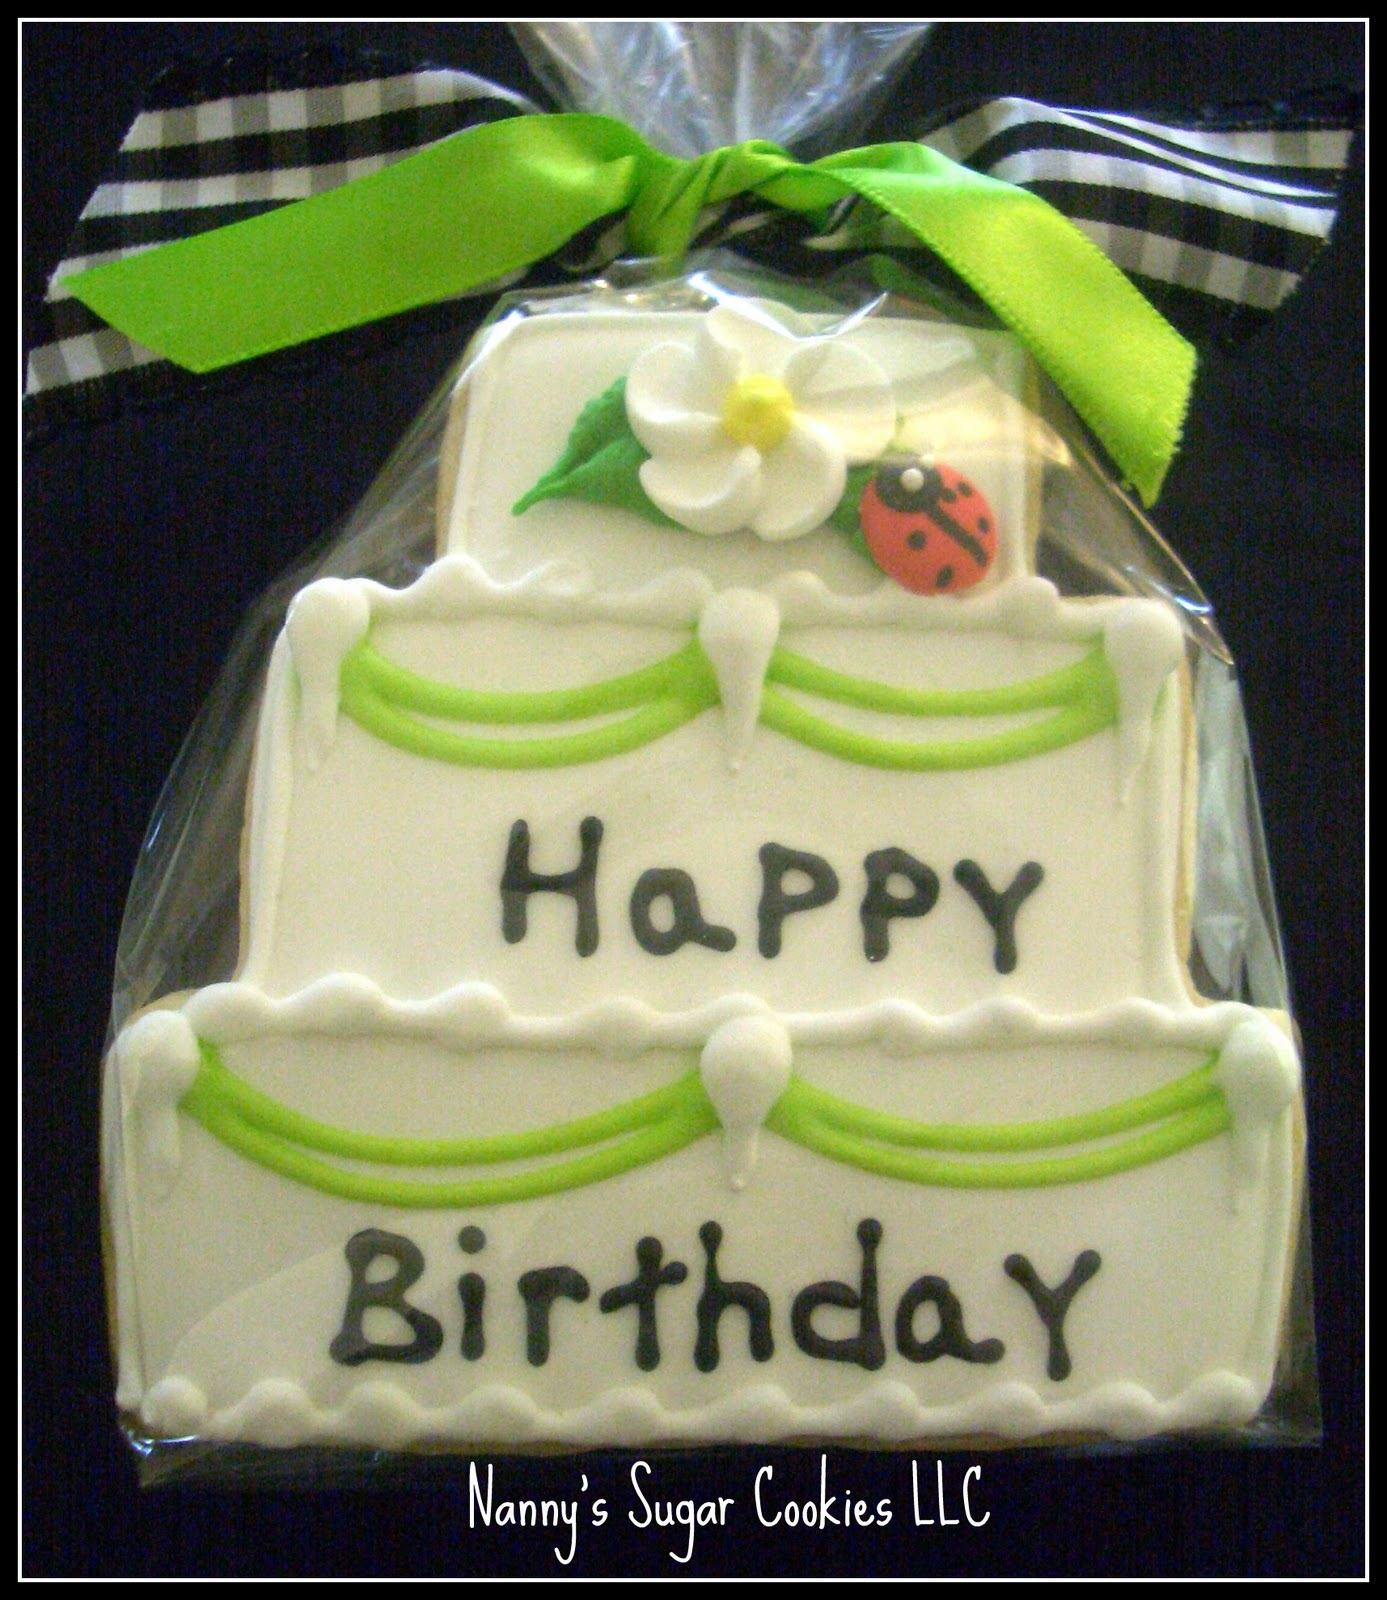 Birthday Cakes Glasgow East End Image Inspiration of Cake and